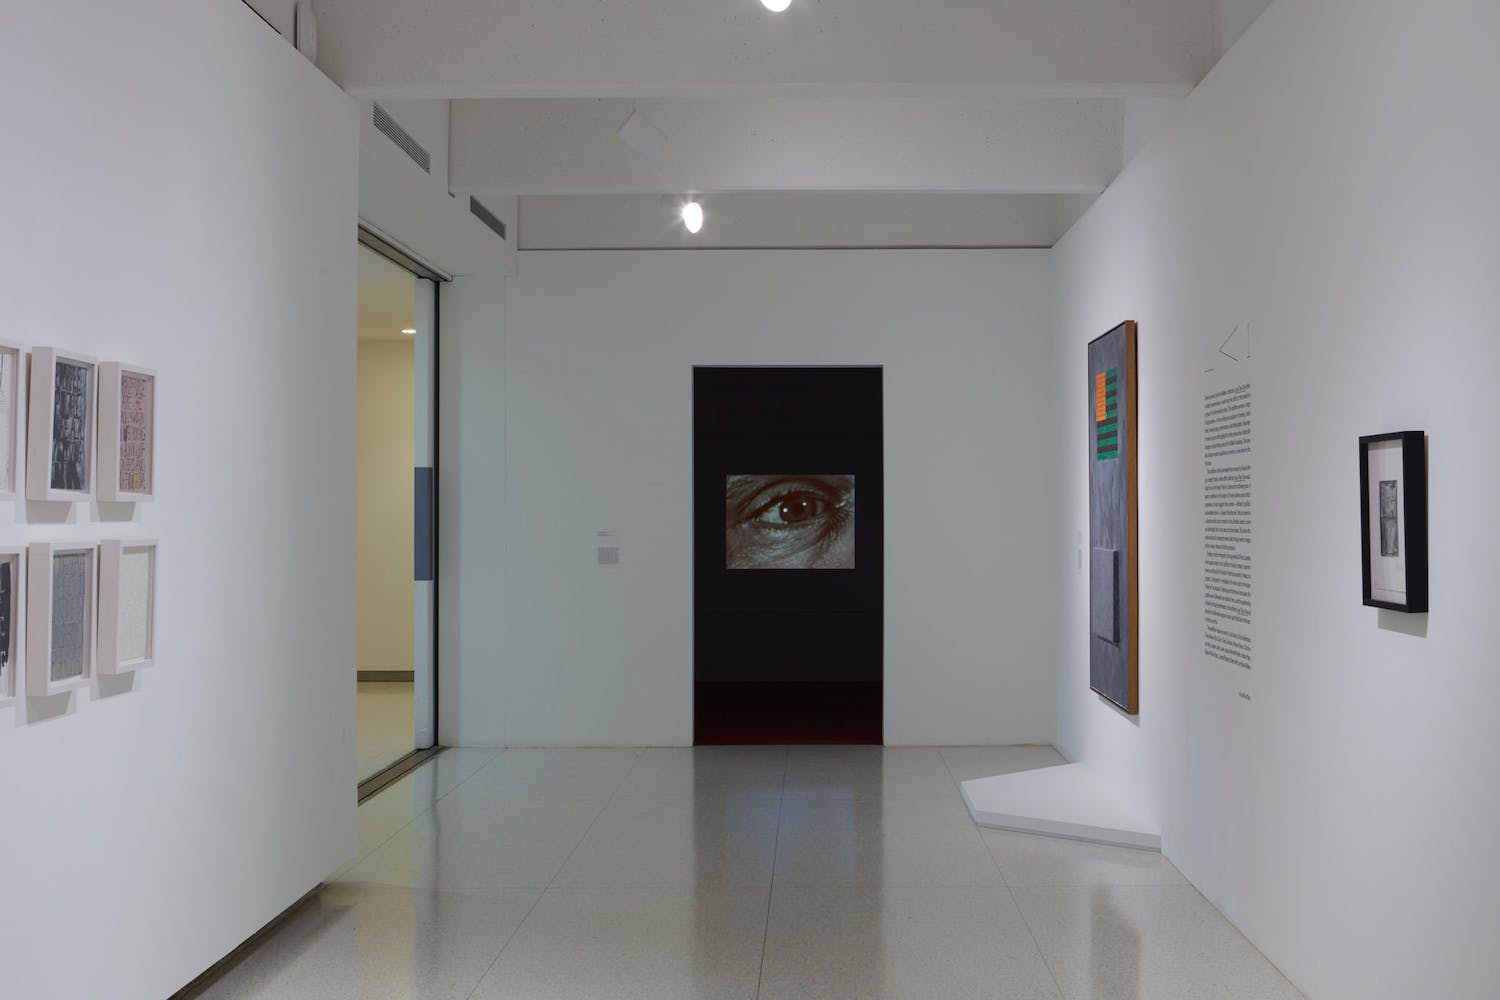 View of the exhibition Less Than One, 2016; (left to right): James Richards, Radio at Night, 2015; Jasper Johns, Flags, 1965 (Photo: Gene Pittman, ©Walker Art Center)